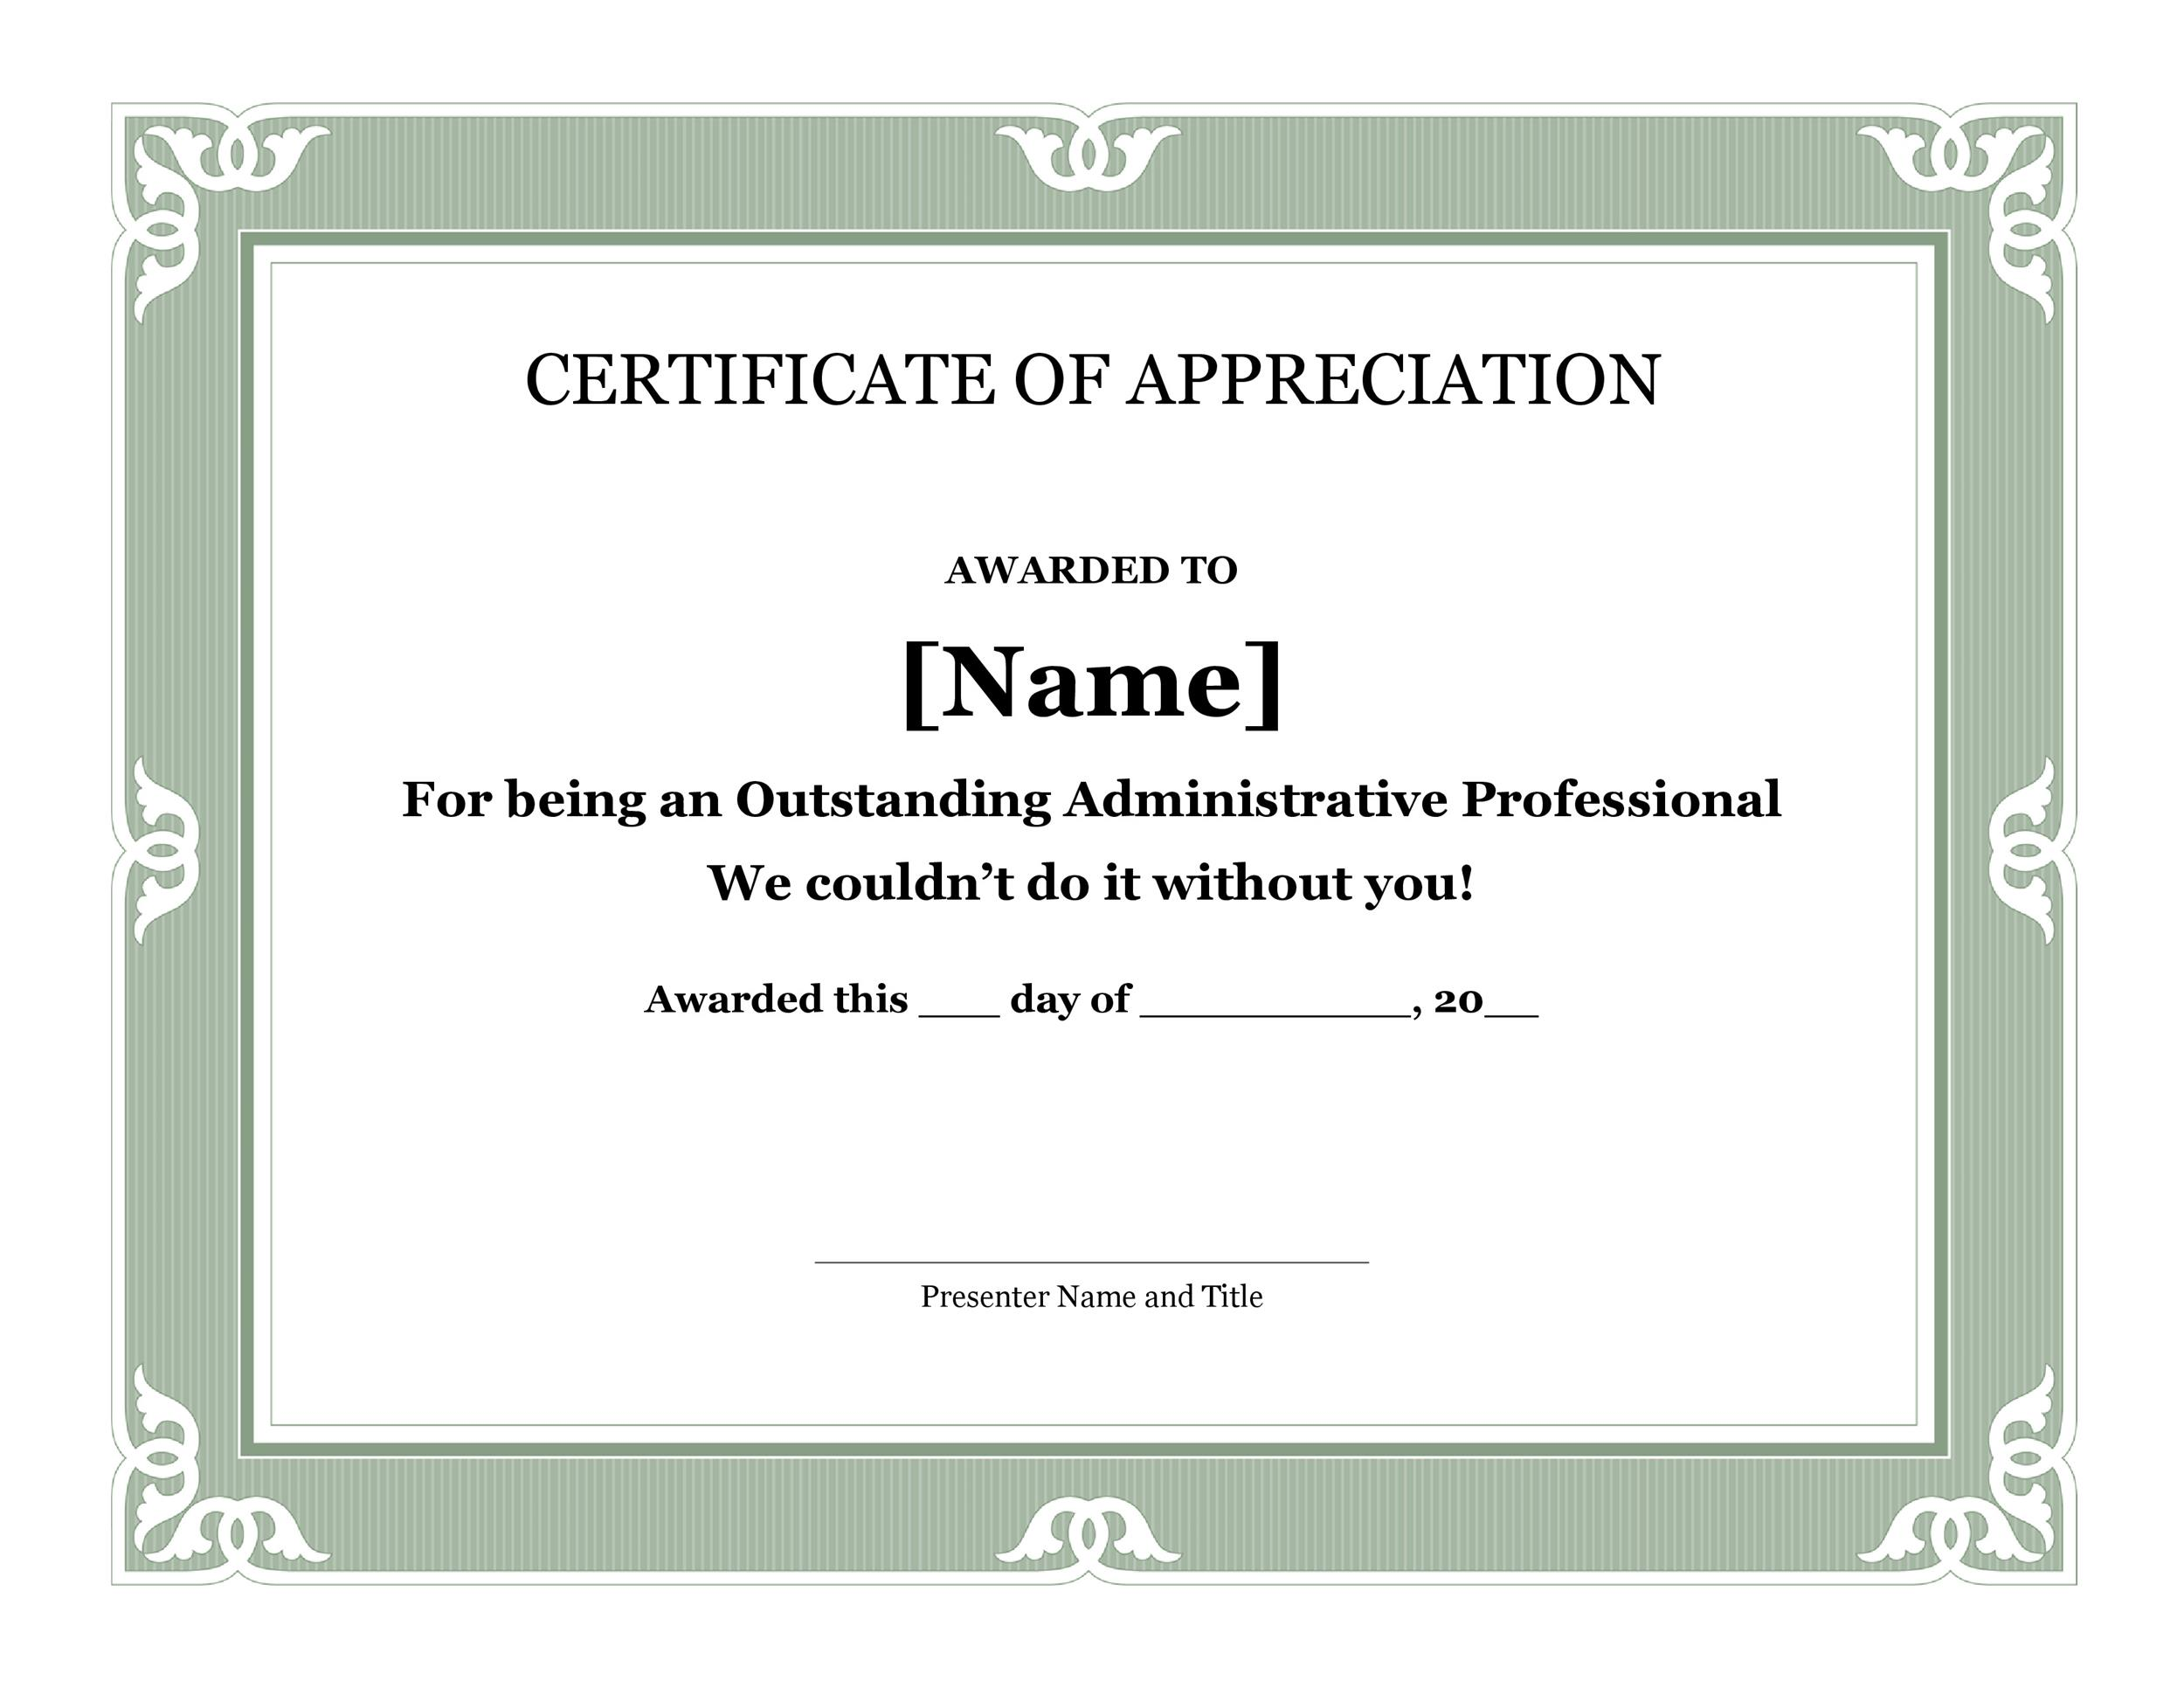 Printable Certificate Of Appreciation 18  Certificate Of Appreciation Template For Word